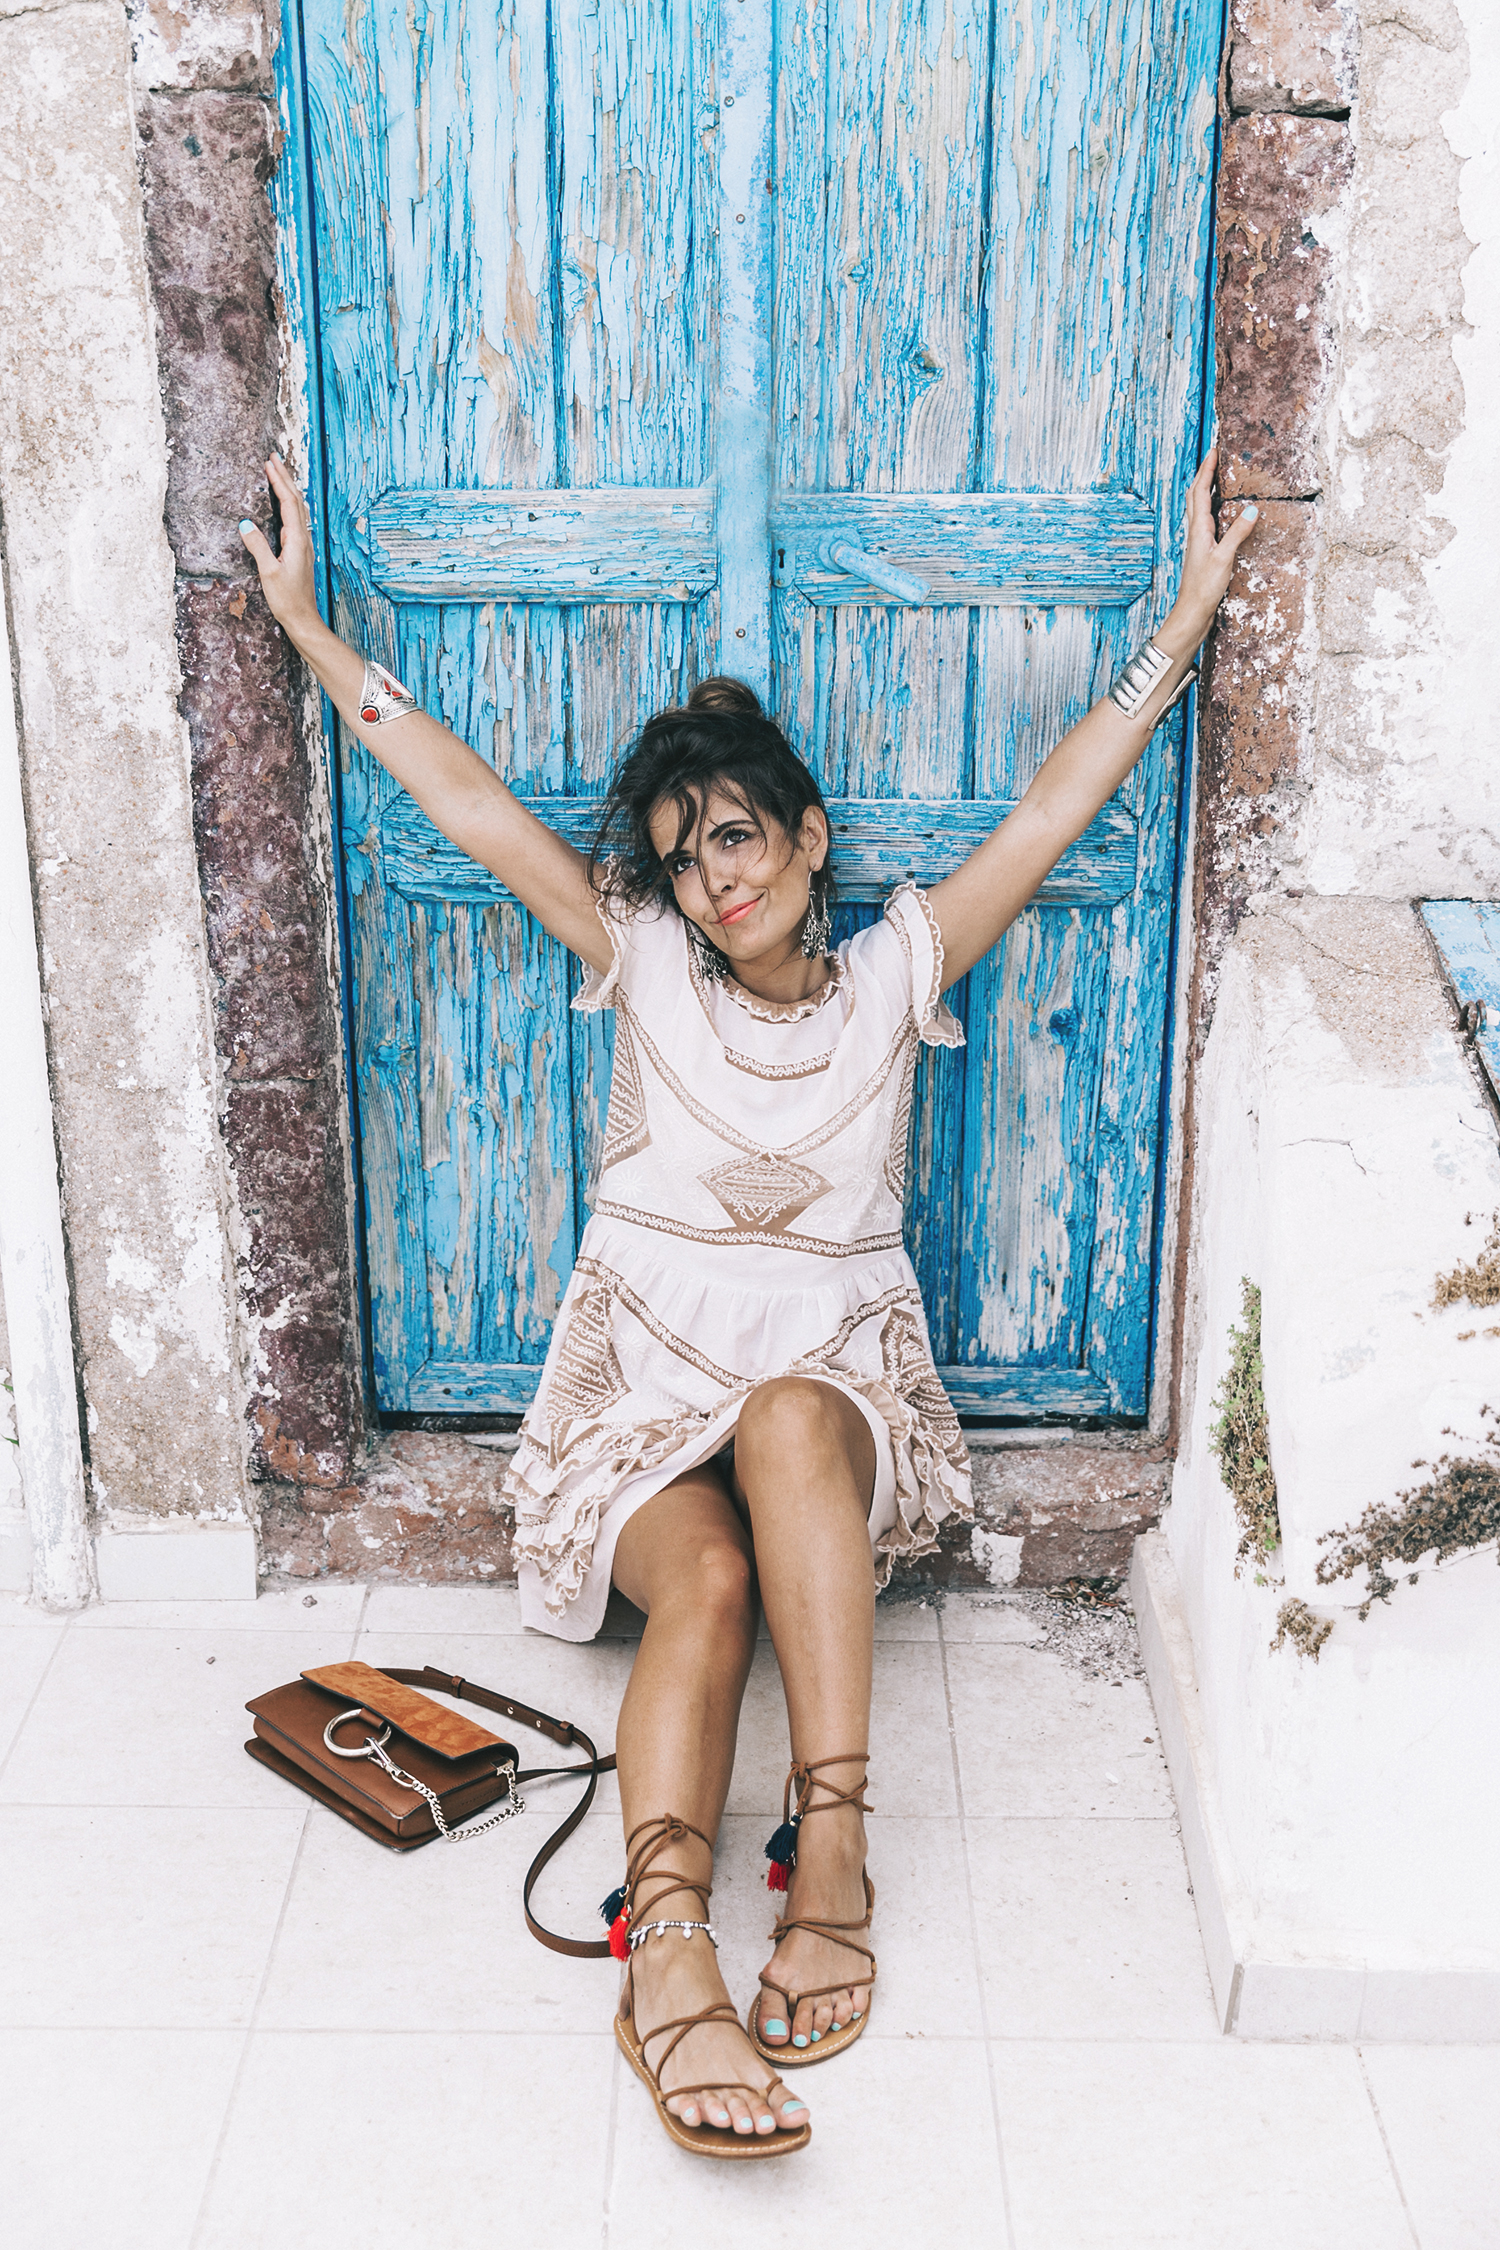 Chloe_Bag-Faye_Bag-For_Love_And_Lemons-Dress-Topknot-Soludos_Escapes-Soludos_Espadrilles-Summer-Santorini-Collage_Vintage-89